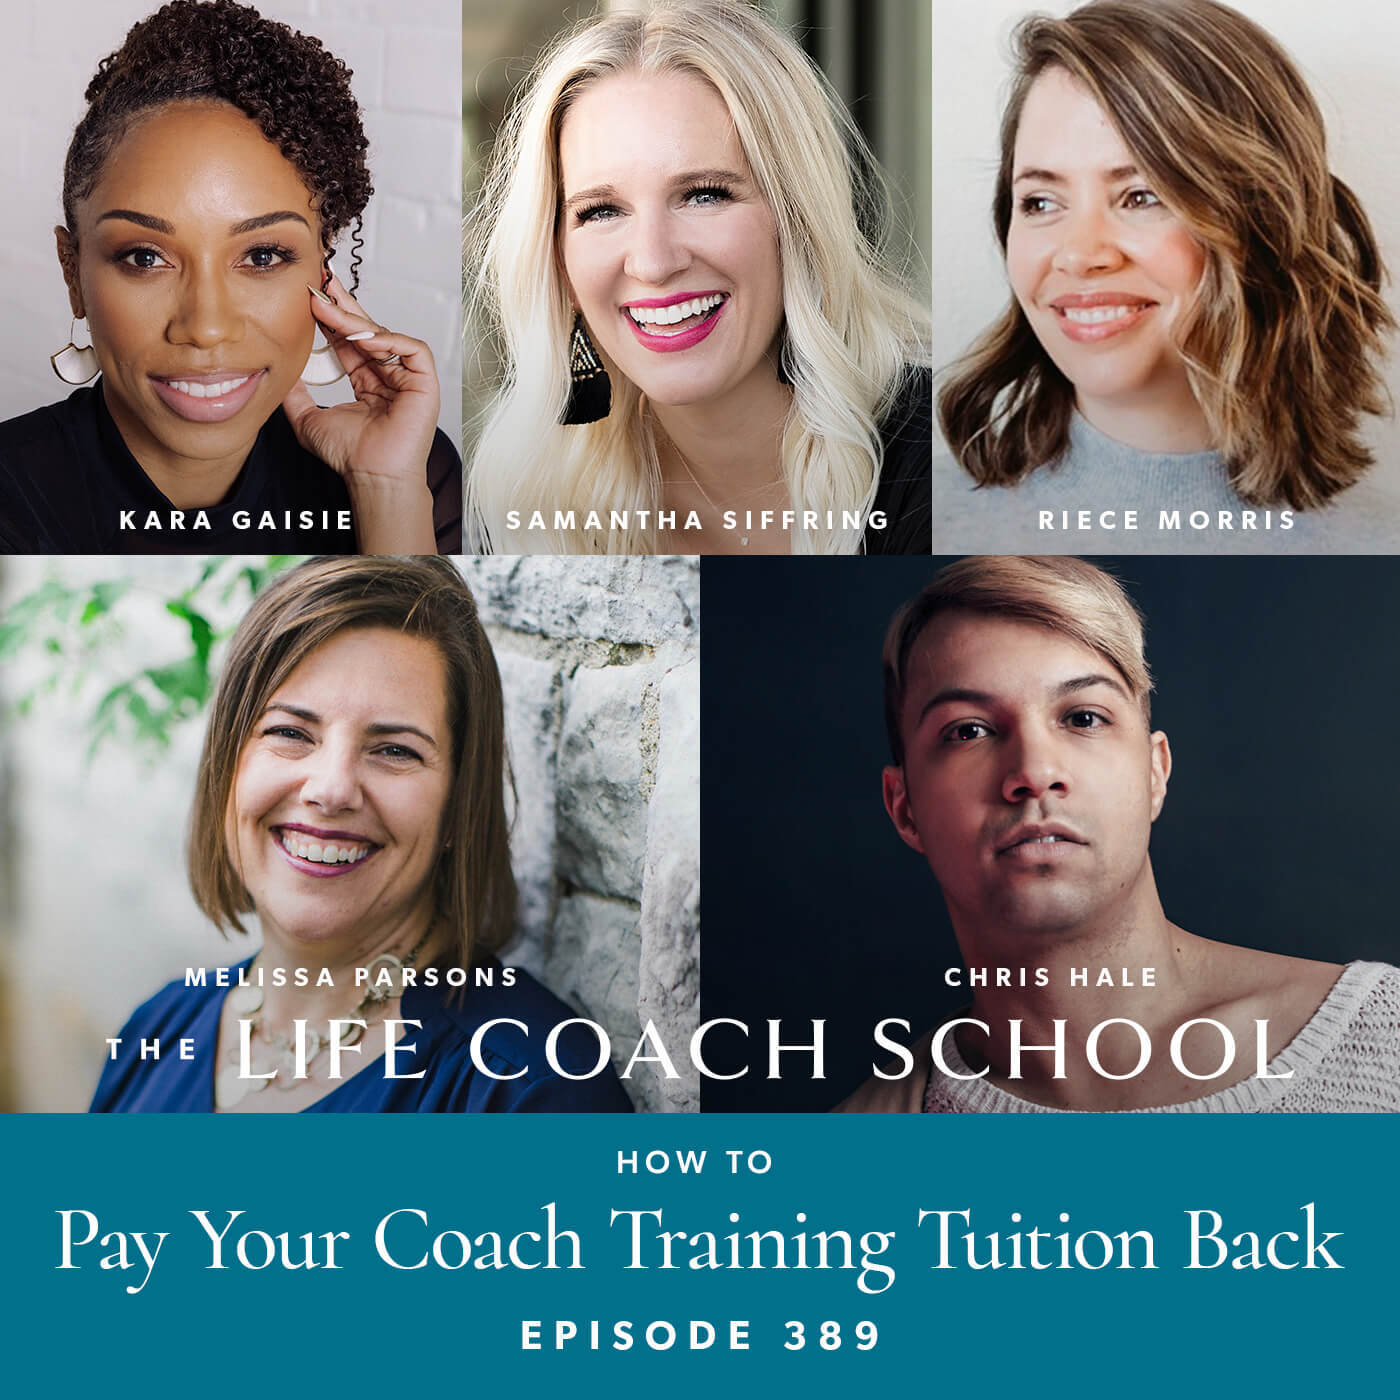 The Life Coach School Podcast with Brooke Castillo   How to Pay Your Coach Training Tuition Back